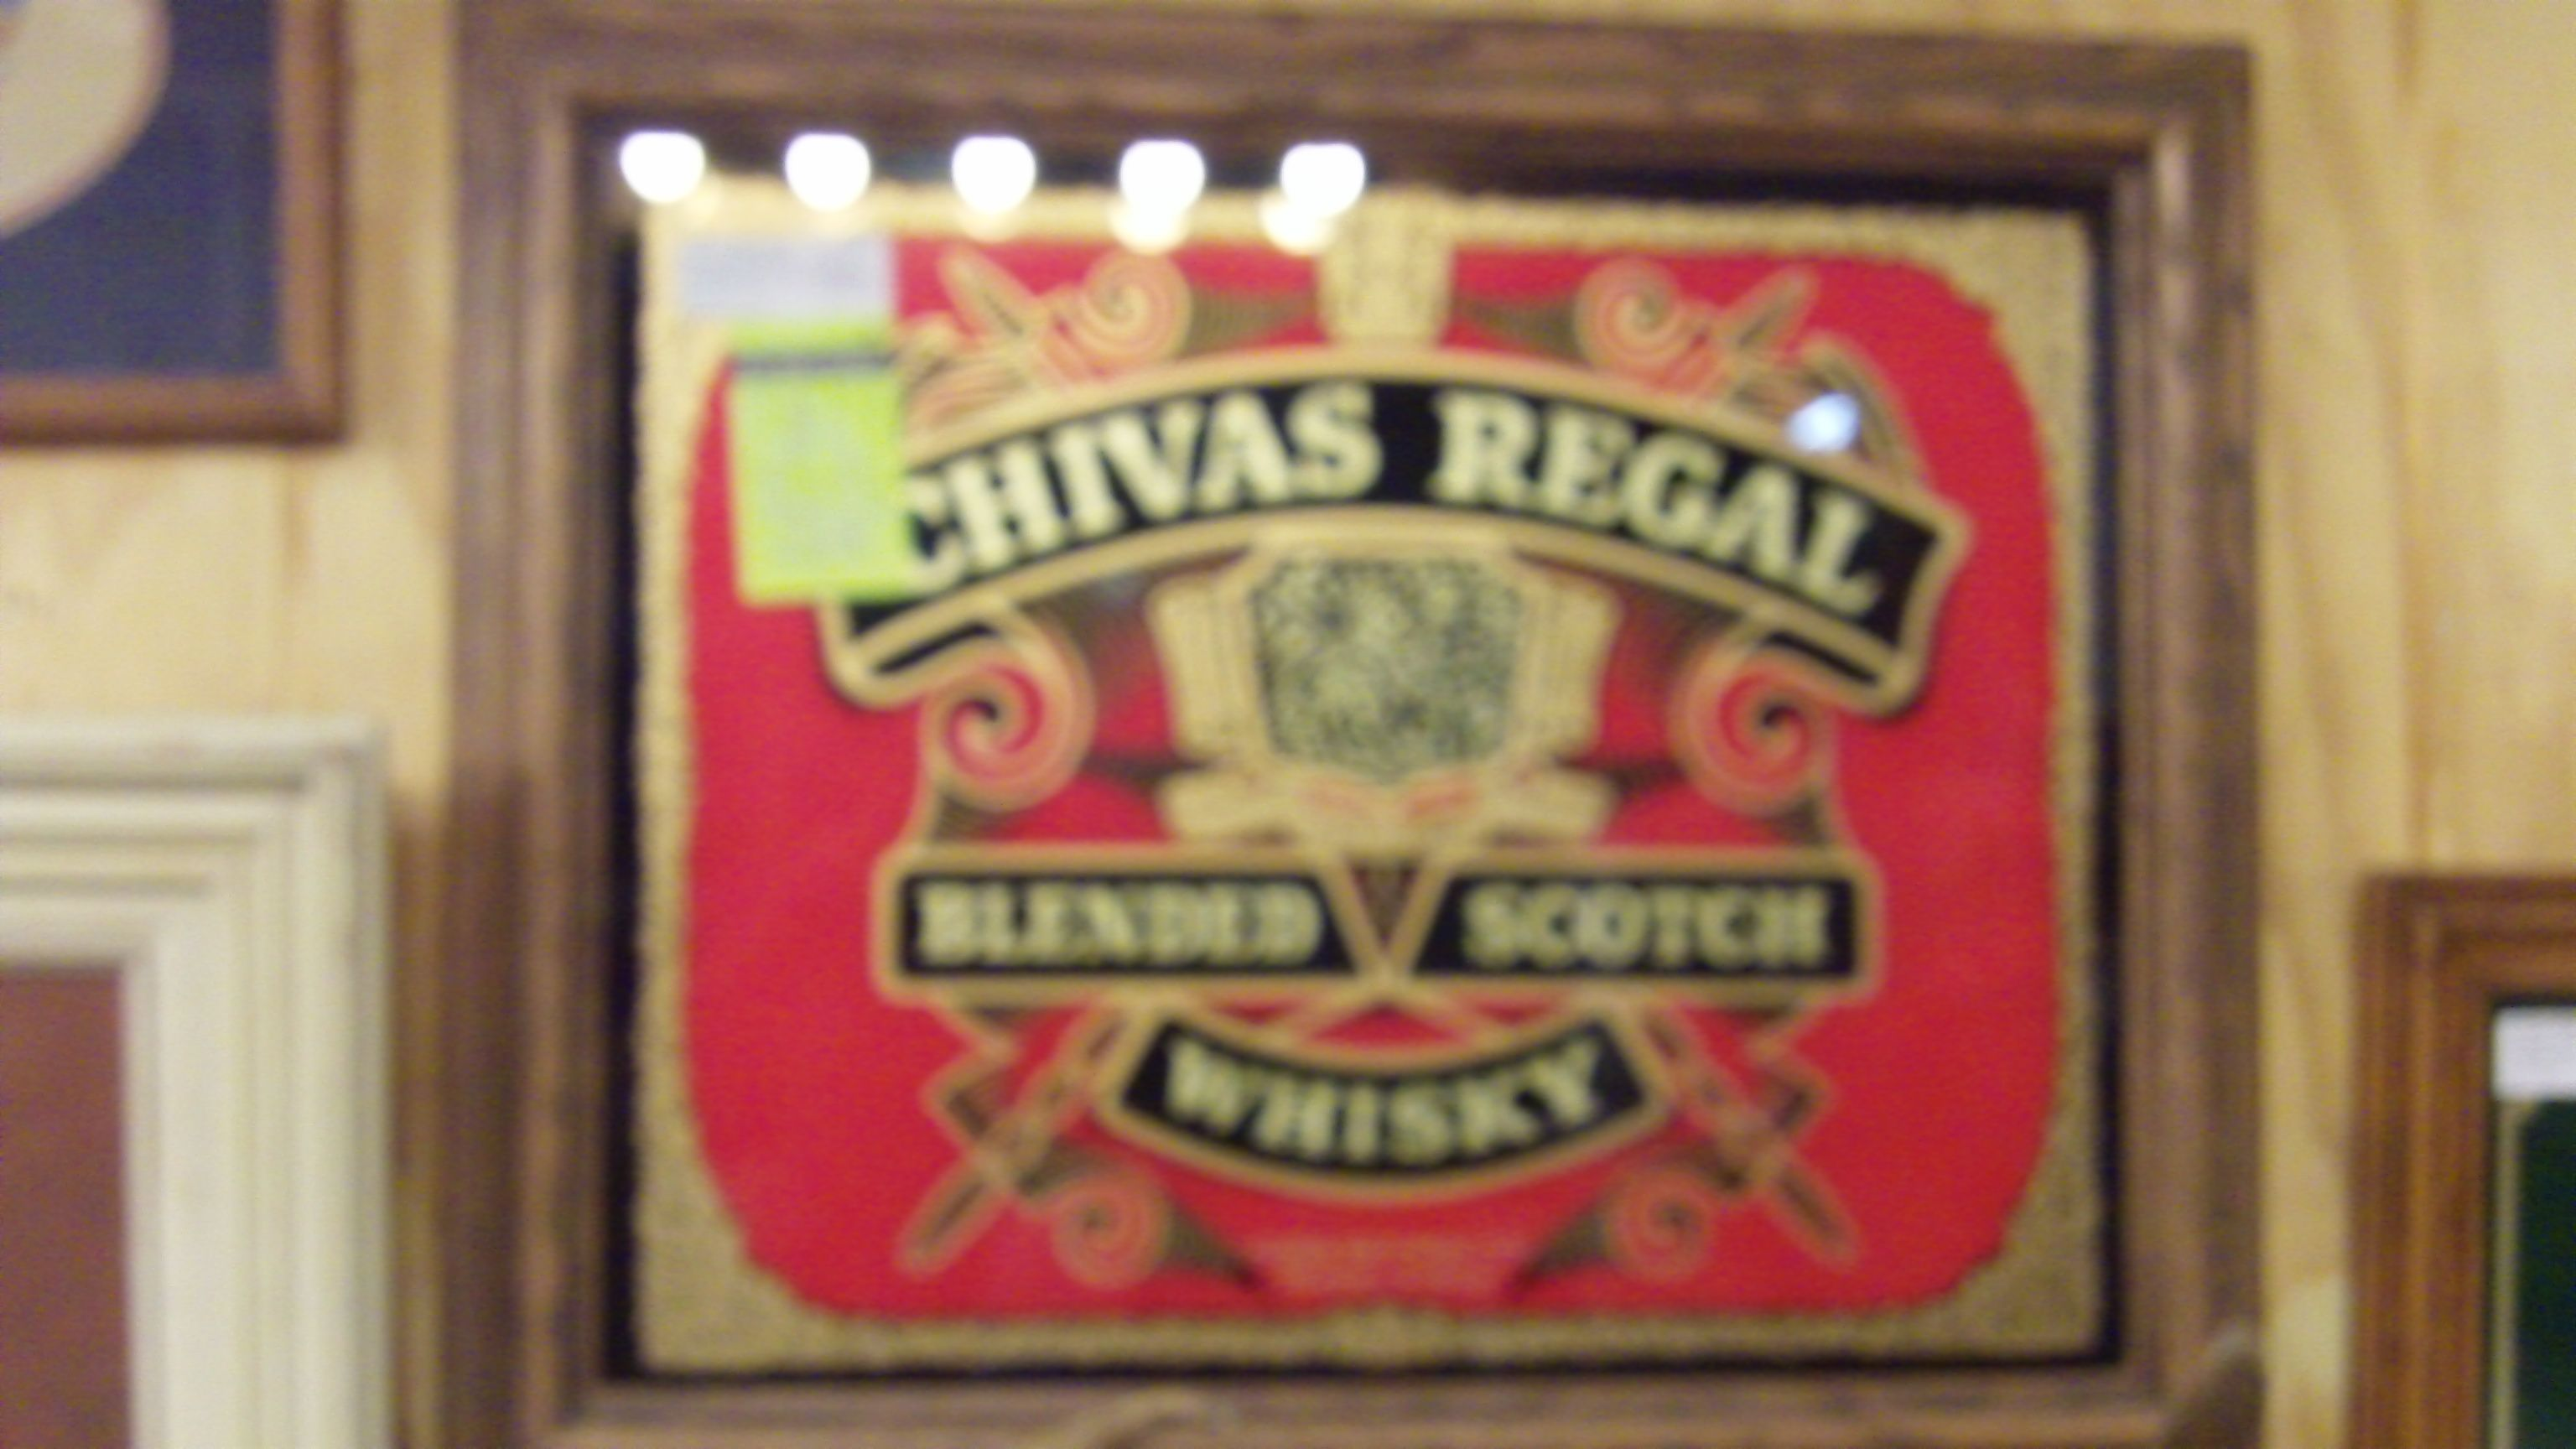 CHIVAS REGAL GLASS LITHO AND FRAME FOR $39.99, DEALER 138, MICHIGAN AVE AND BOOTH 146 AT THE BRASS ARMADILLO IN GRAIN VALLEY, MO. SHIPPING IS AVAILABLE FOR AN ADDITIONAL FEE.